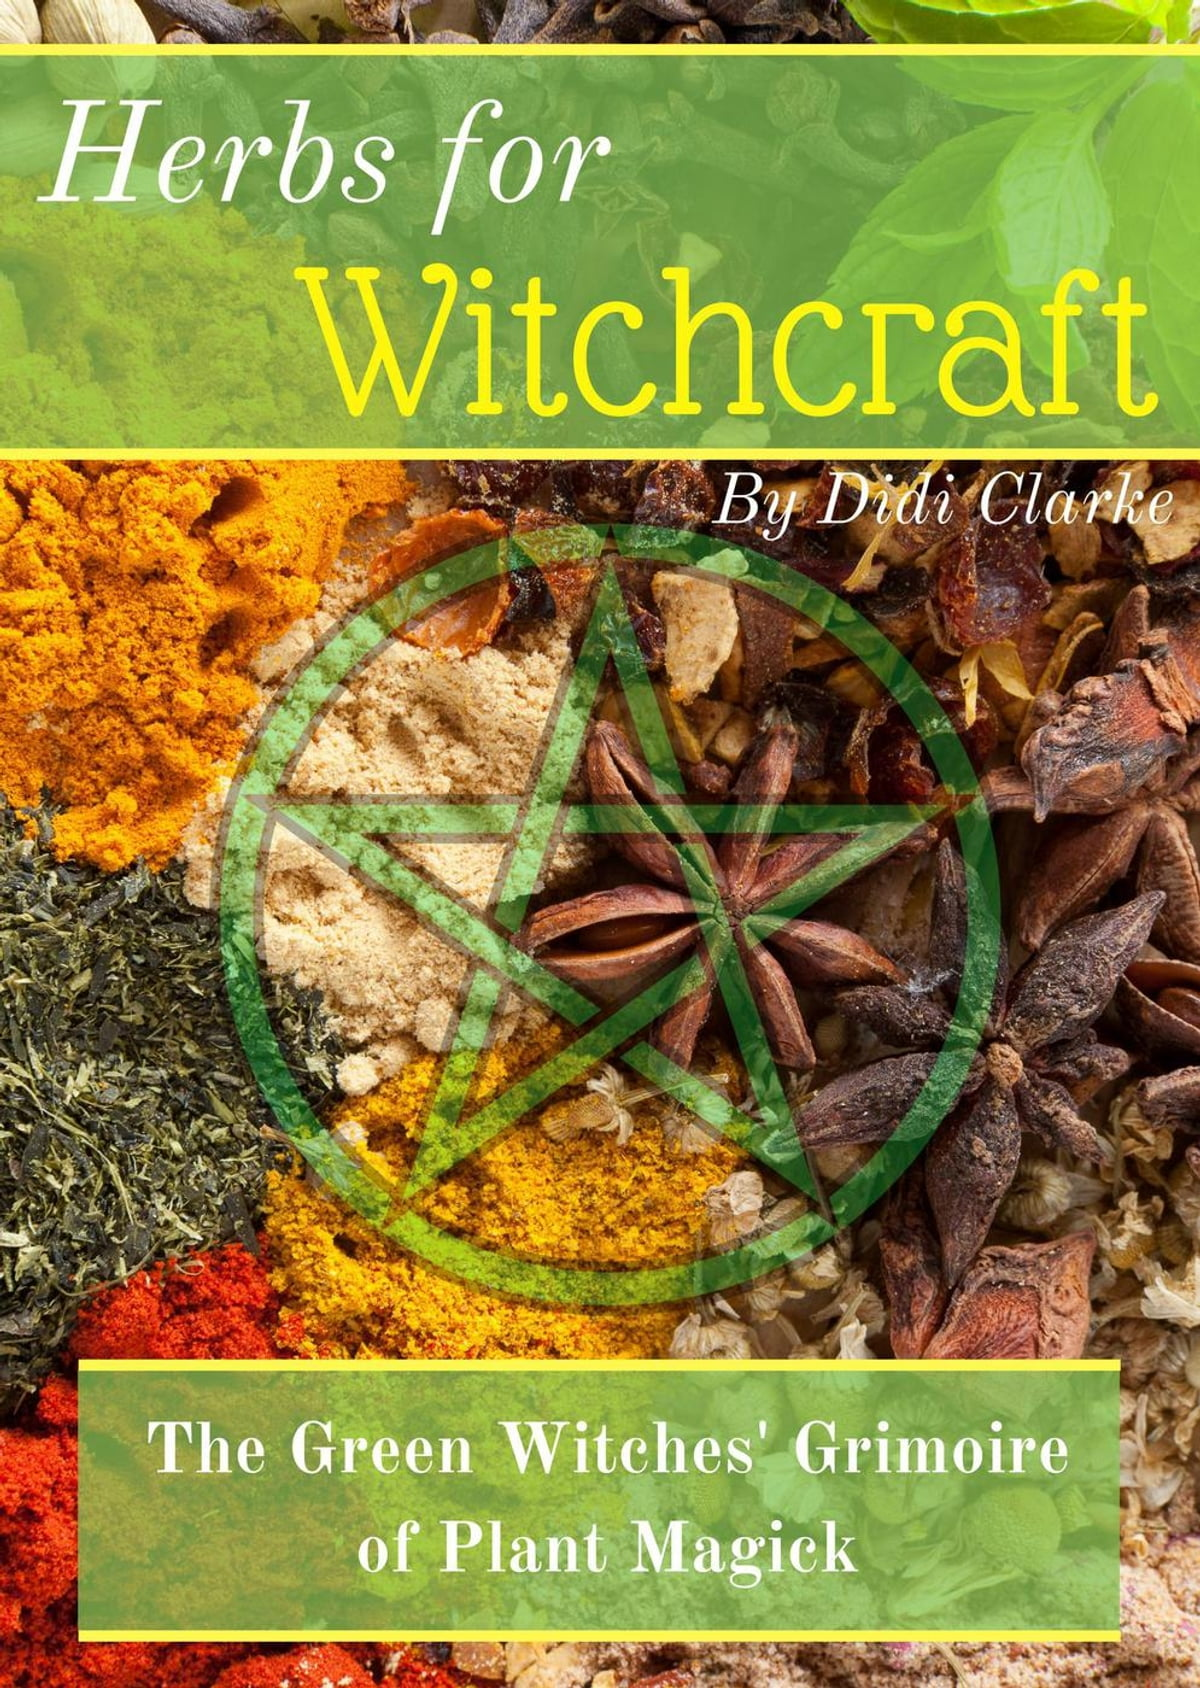 Herbs for Witchcraft: The Green Witches' Grimoire of Plant Magick ebook by  Didi Clarke - Rakuten Kobo